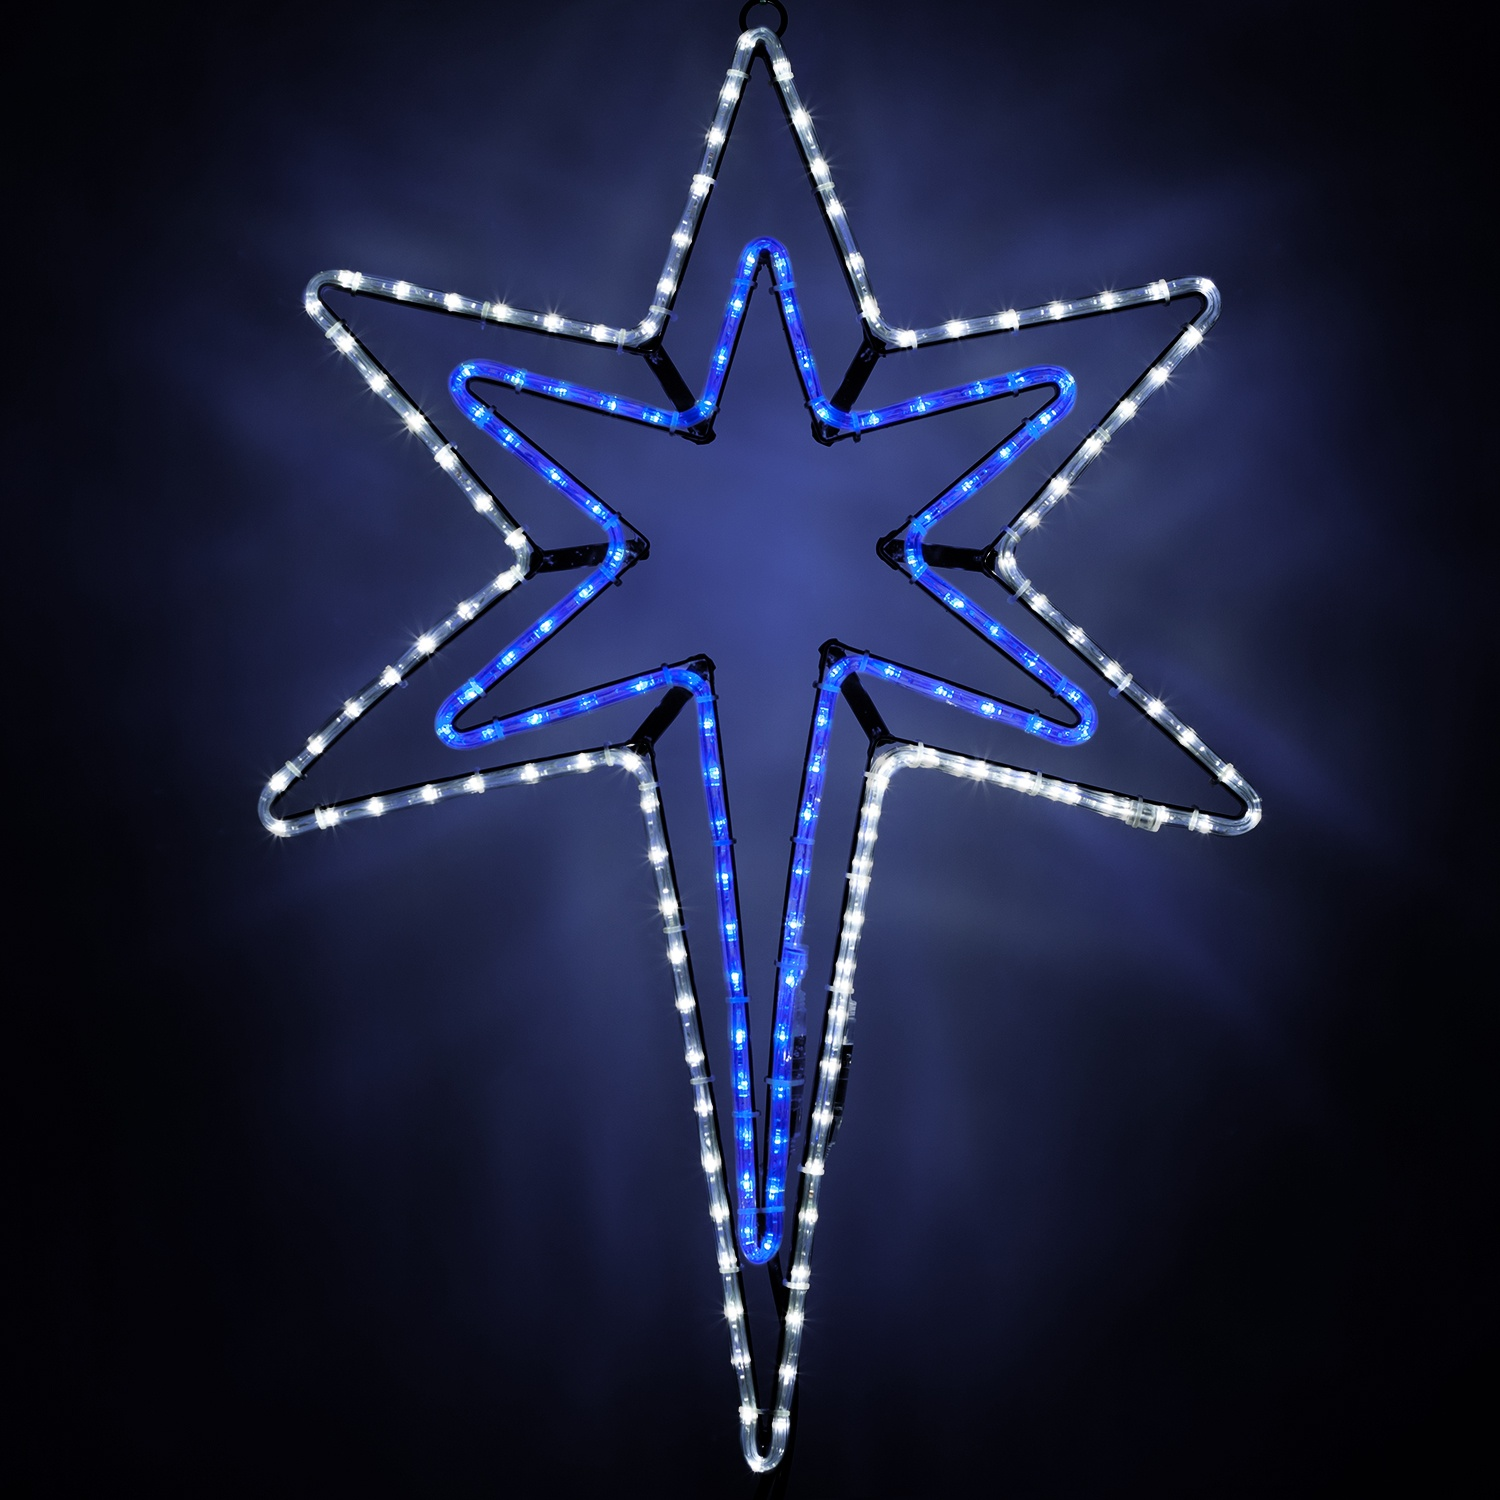 Christmas Star Lights Snowflakes And Stars Led Bethlehem Star With A Blue Center